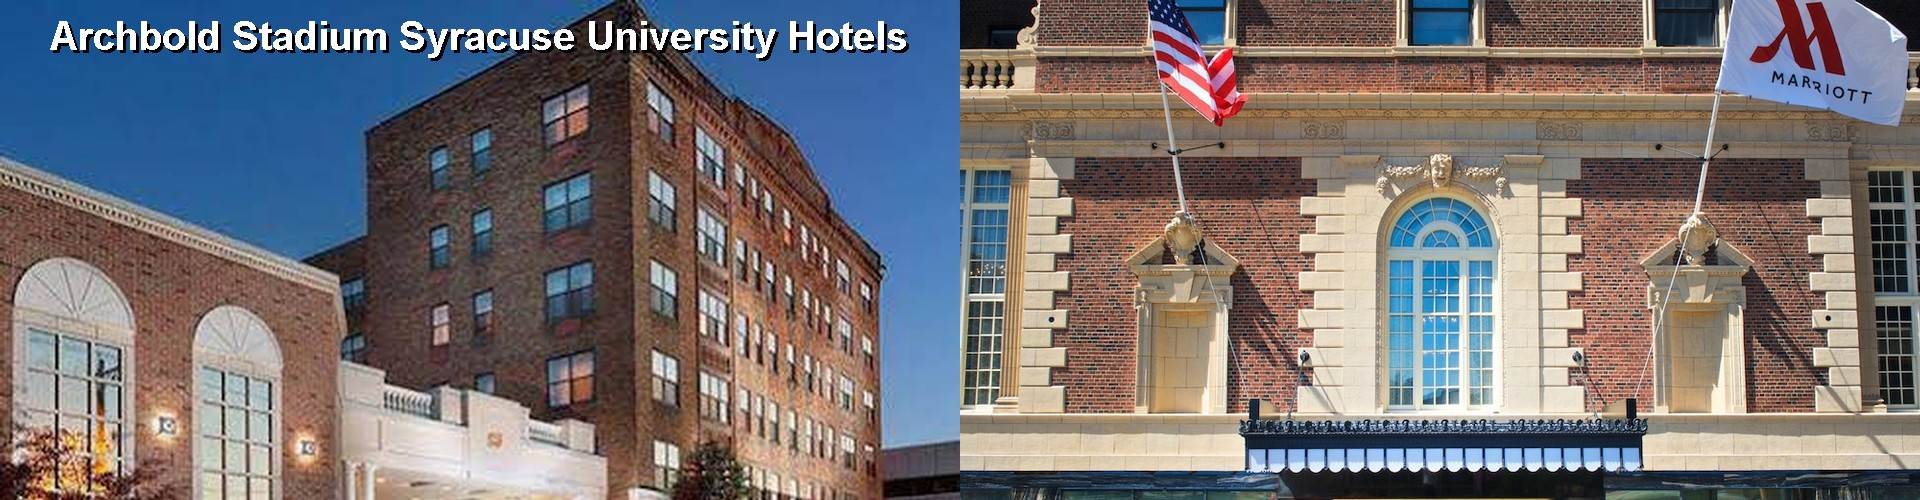 5 Best Hotels Near Archbold Stadium Syracuse University